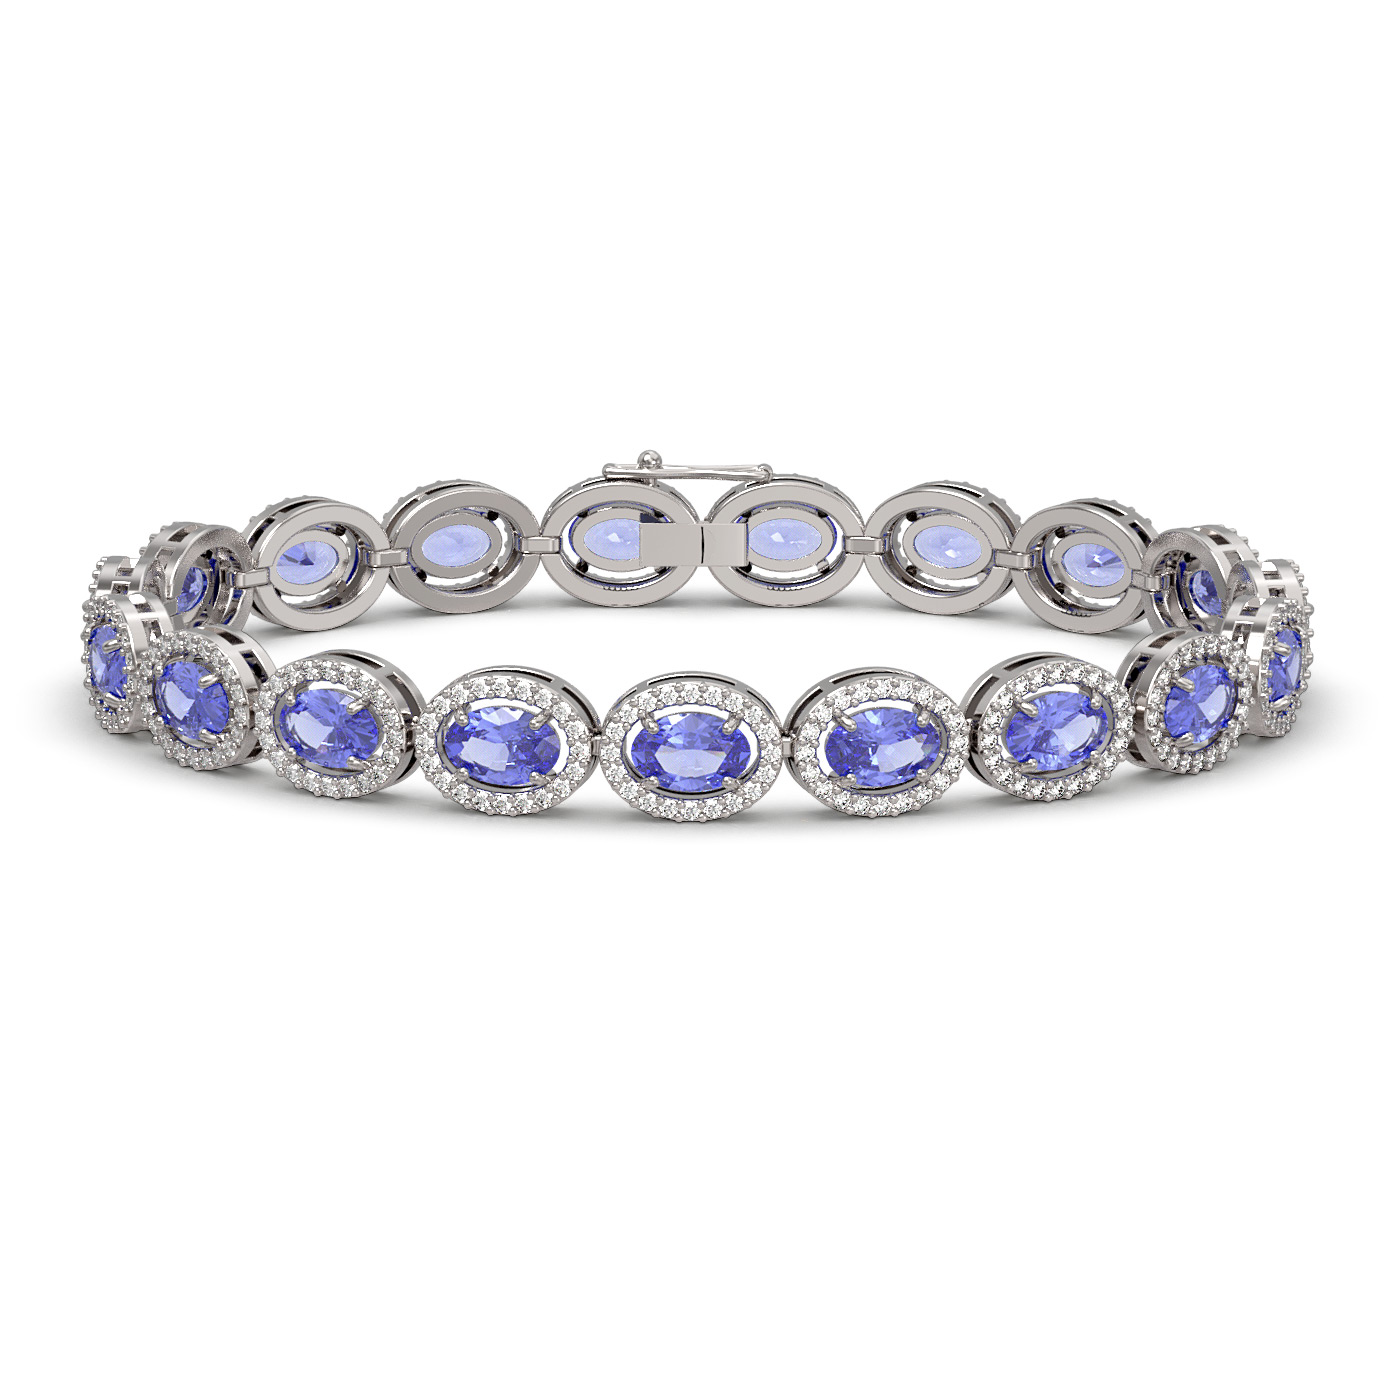 14.25 Ctw Tanzanite & Diamond Bracelet White Gold